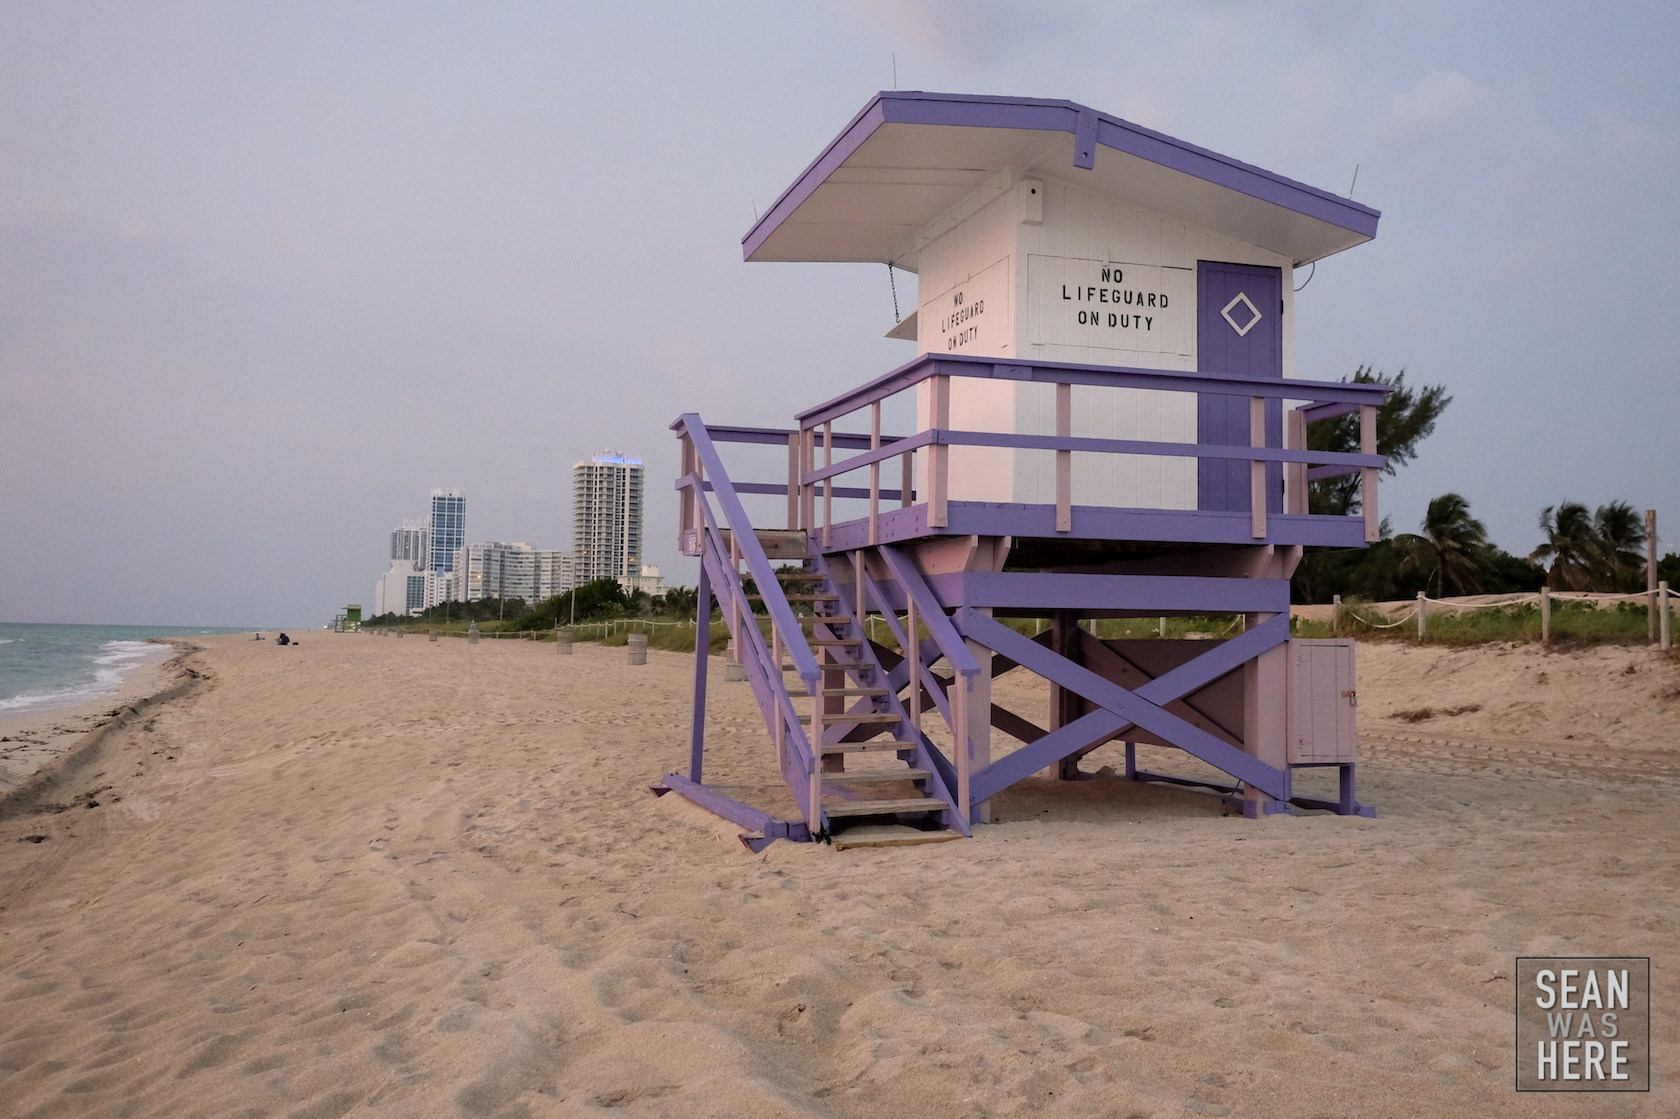 Miami Beach 79th Street Lifeguard Stand